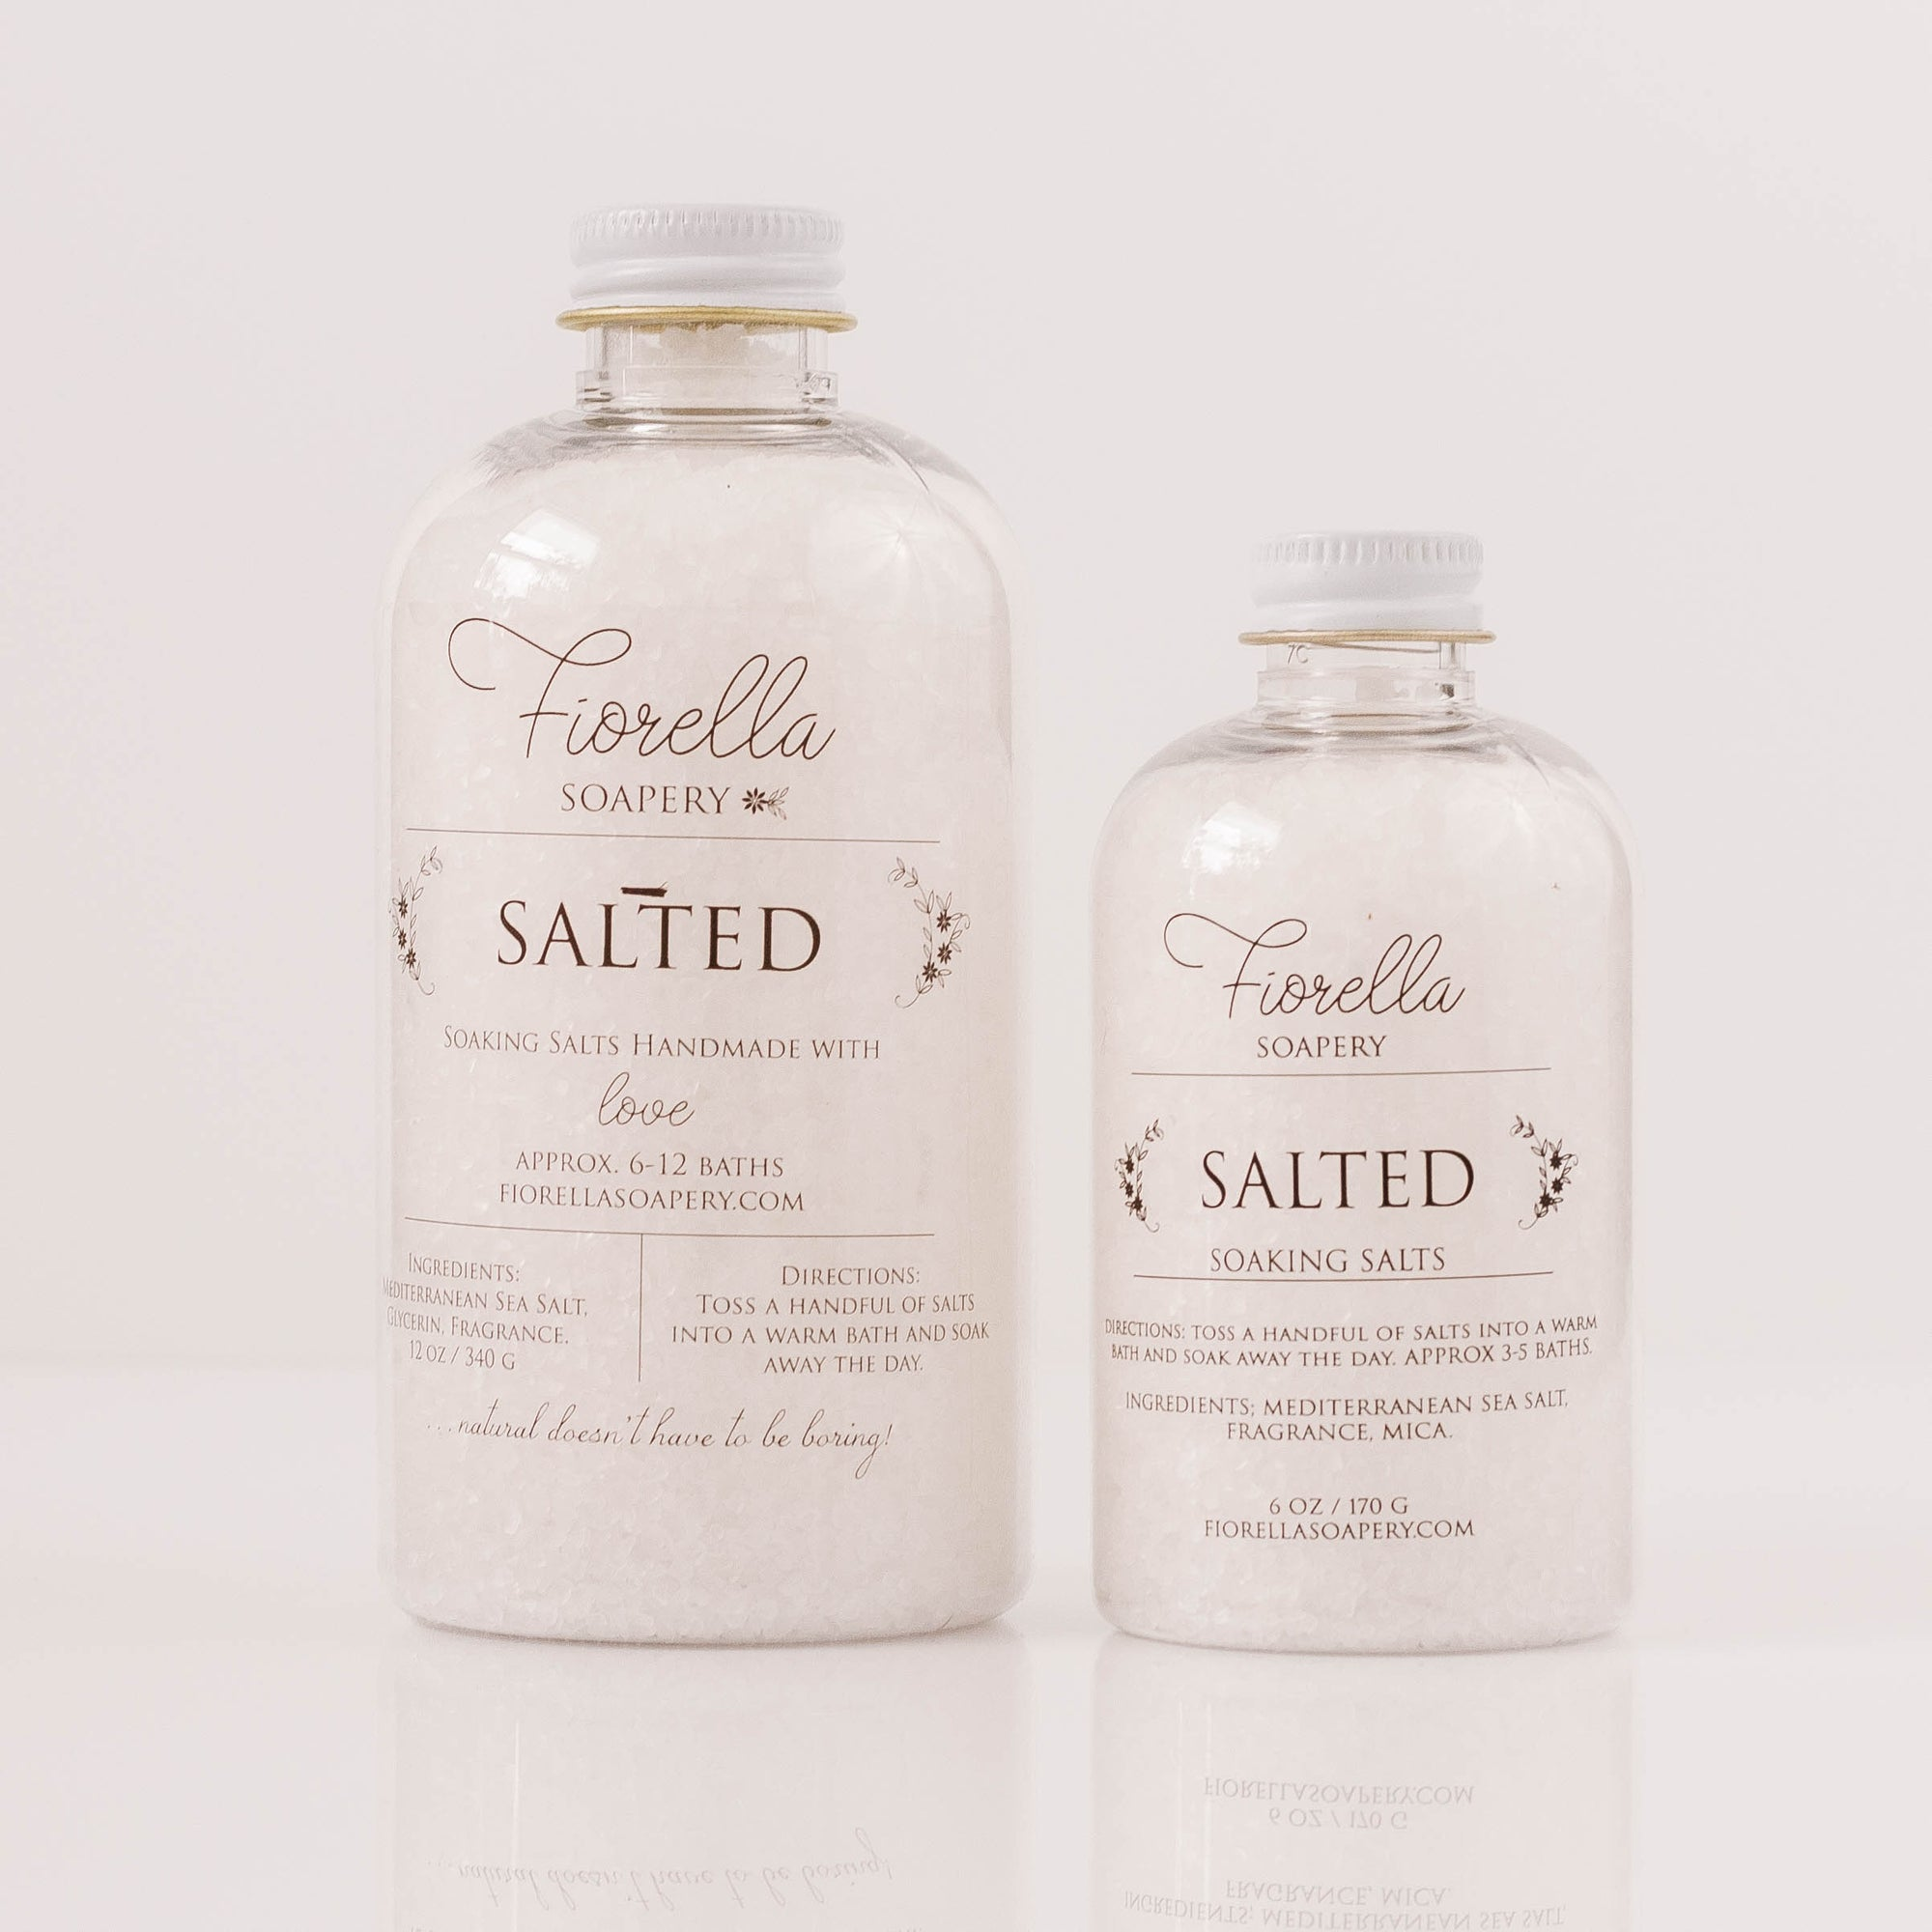 Salted Soaking Salts